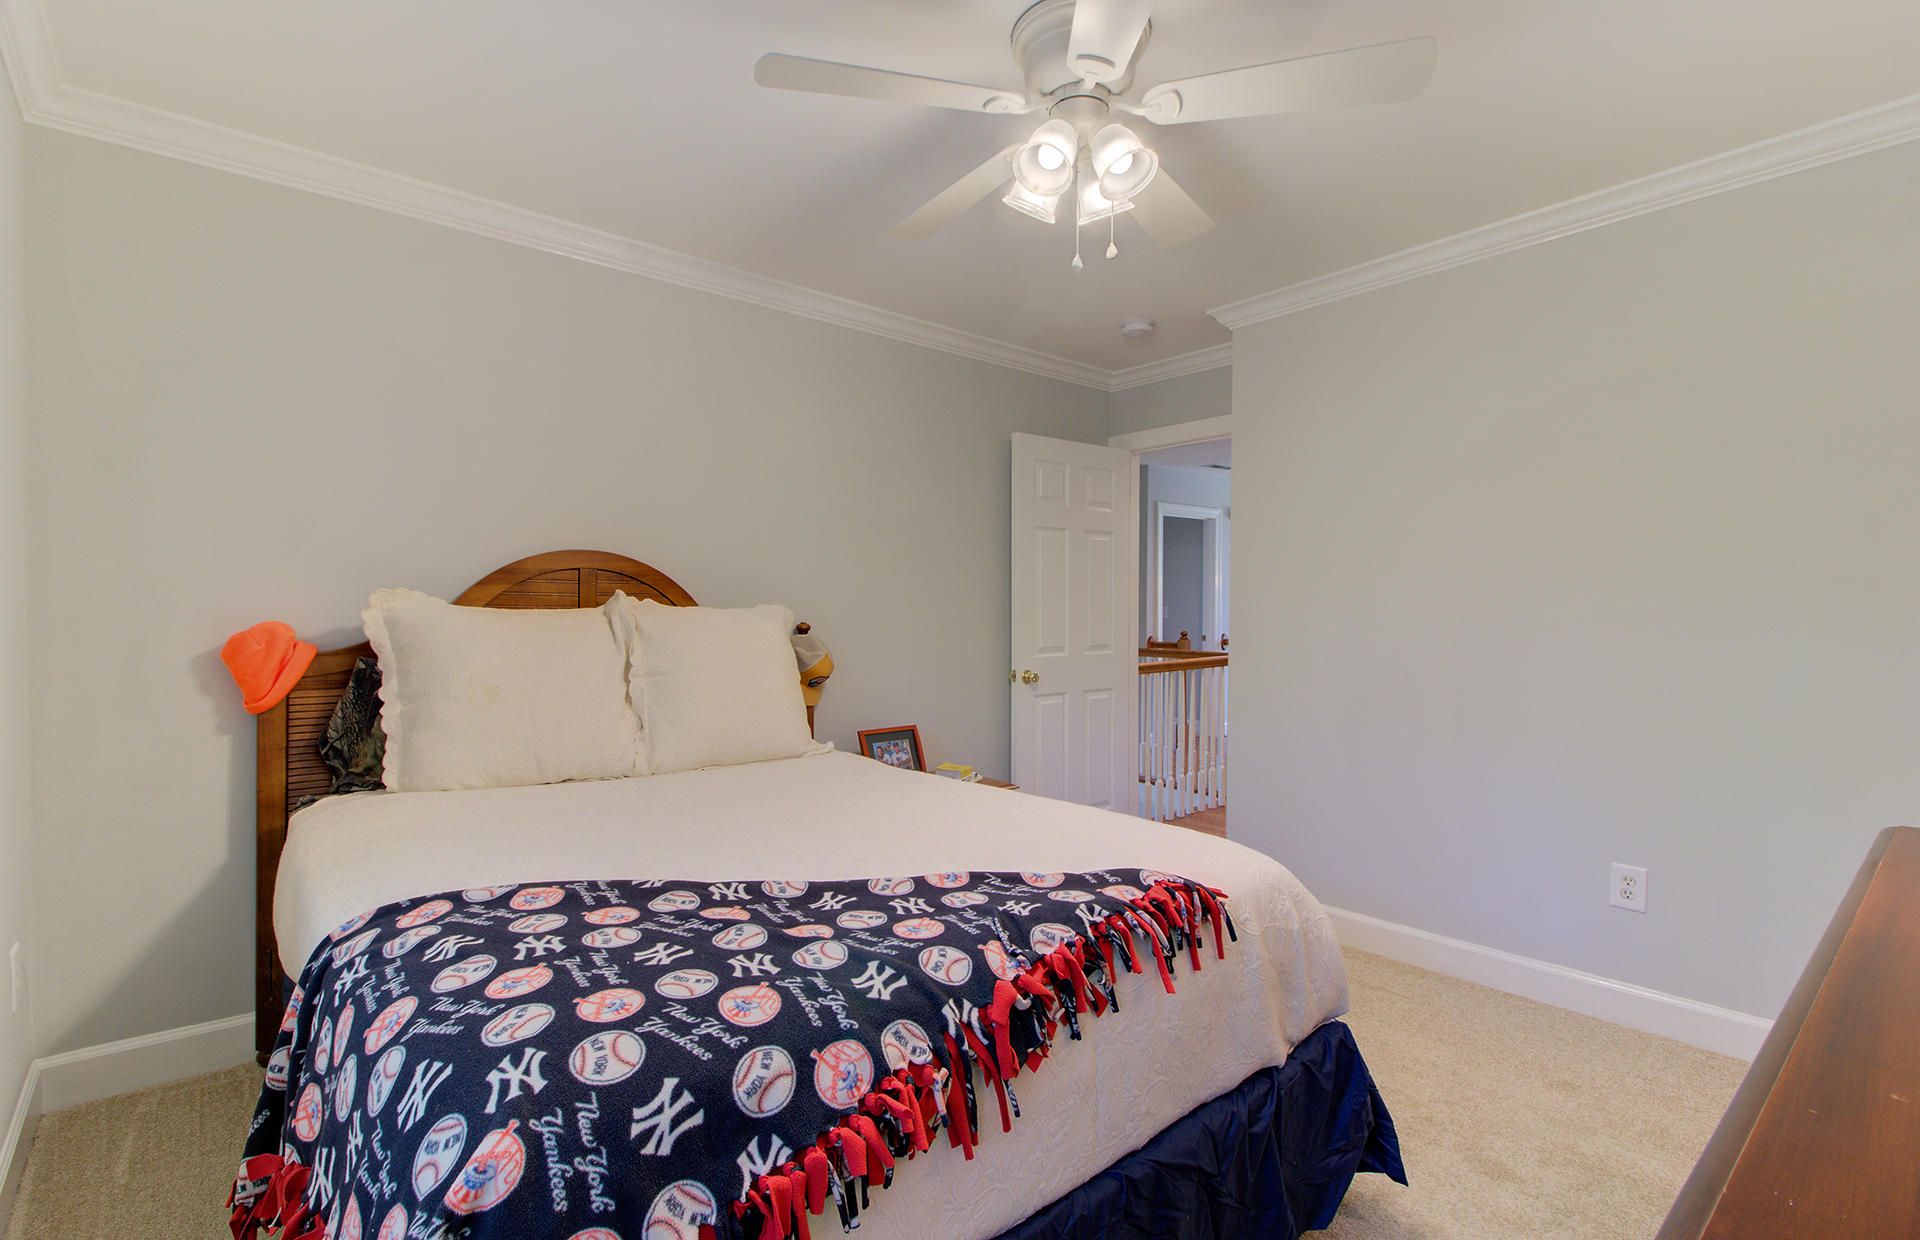 Parrot Bluff Homes For Sale - 872 Treasury Bend, Charleston, SC - 9